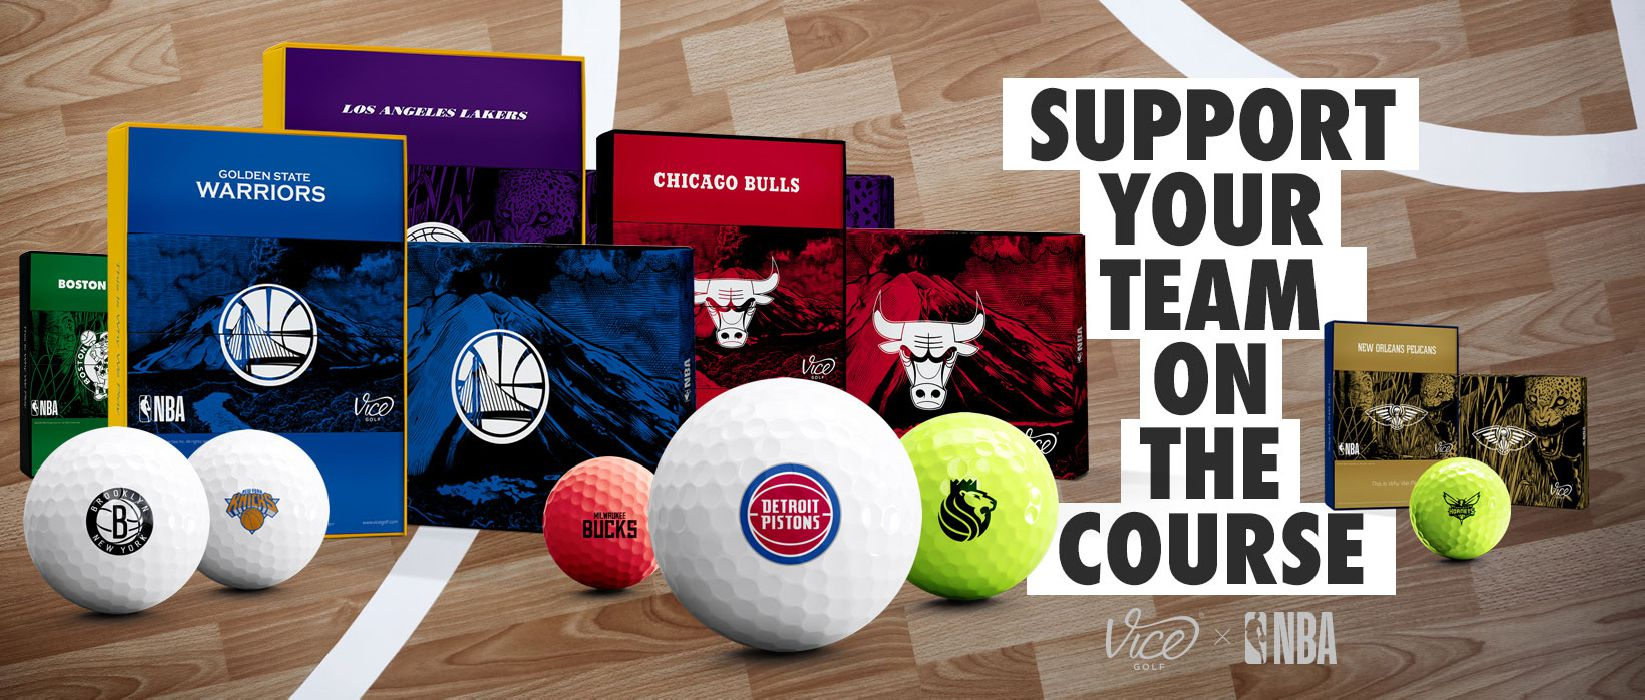 href='vice-golf-nba'